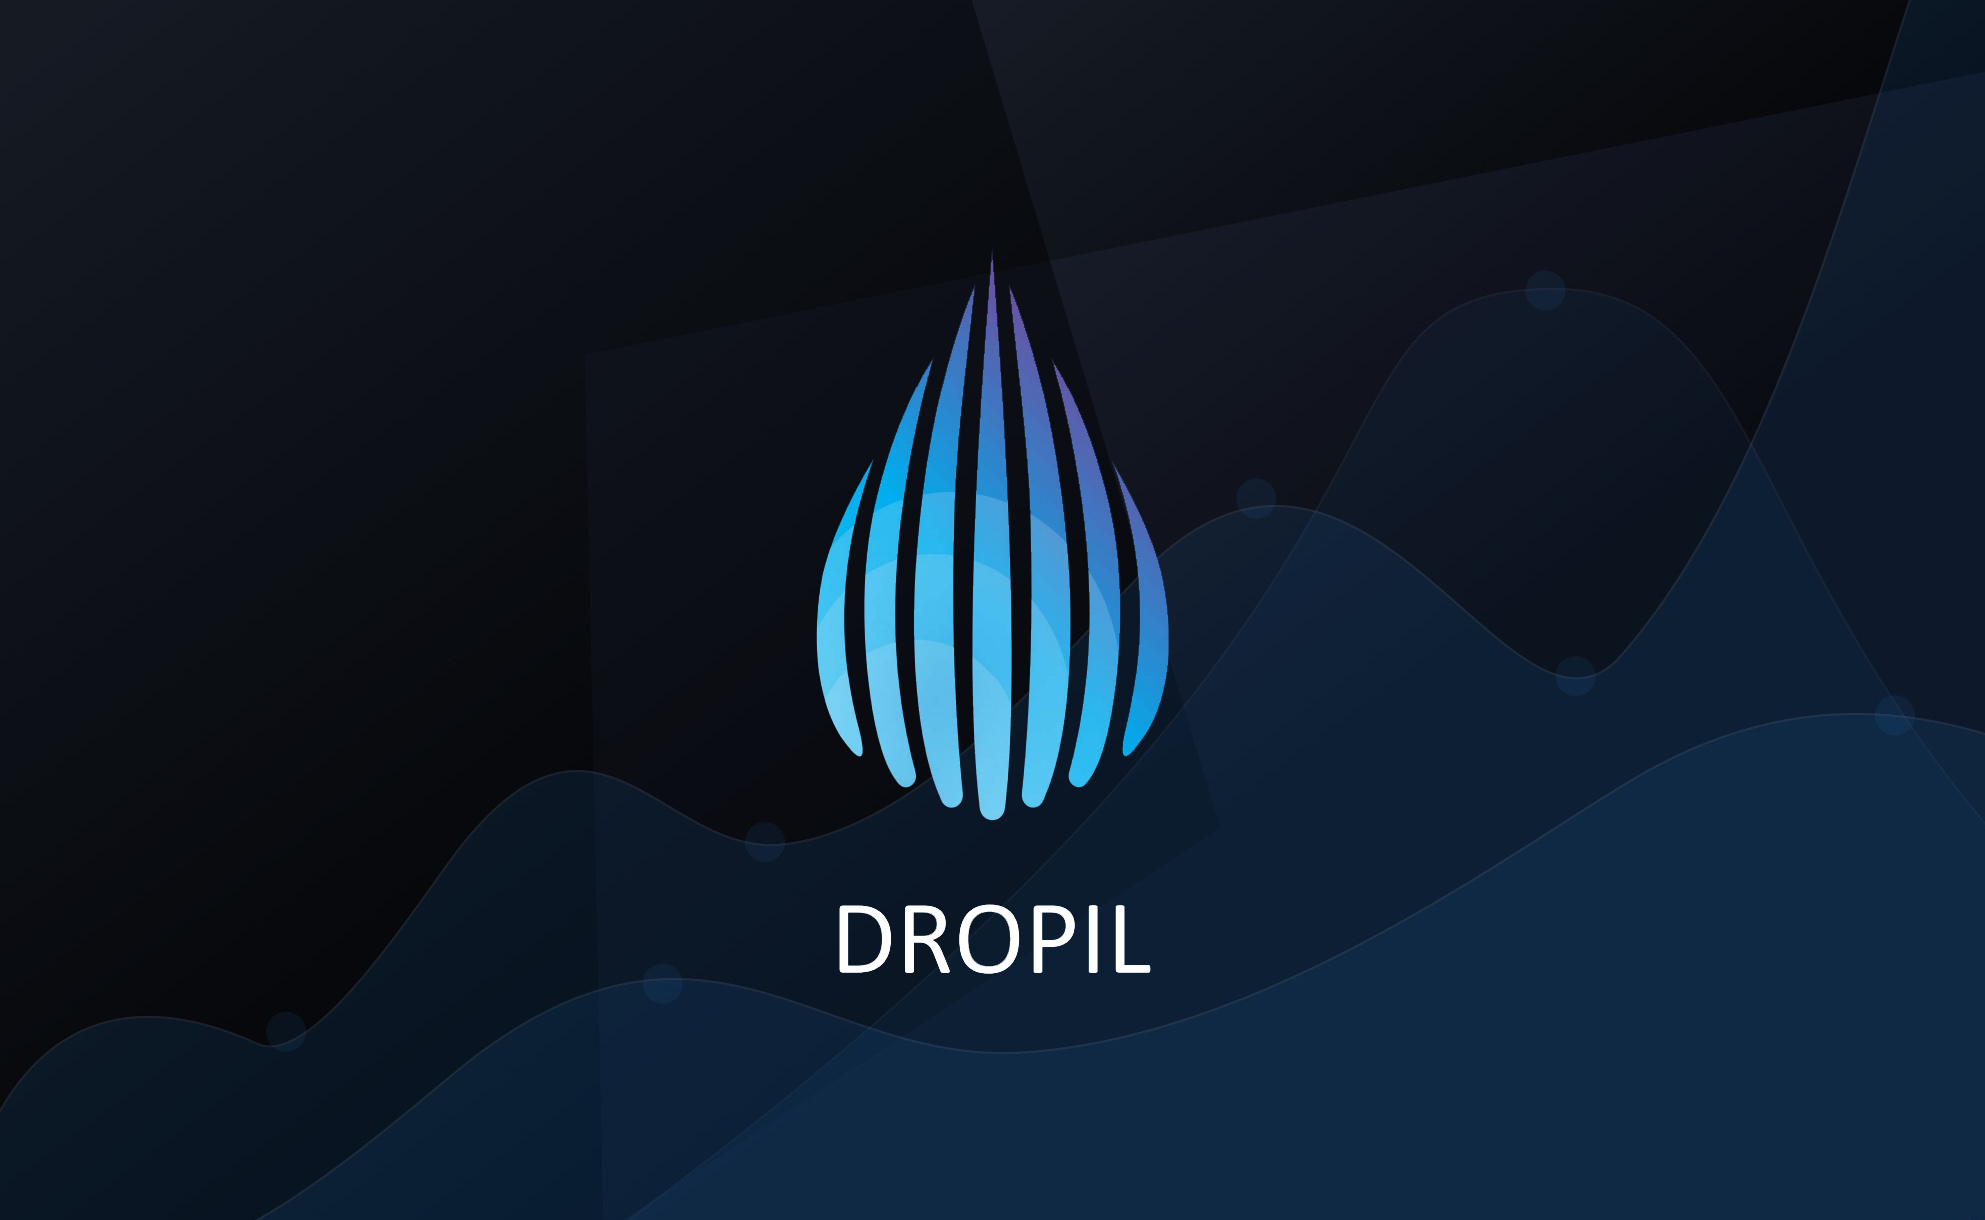 Dropil - mapindu a DROP cryptocurrency